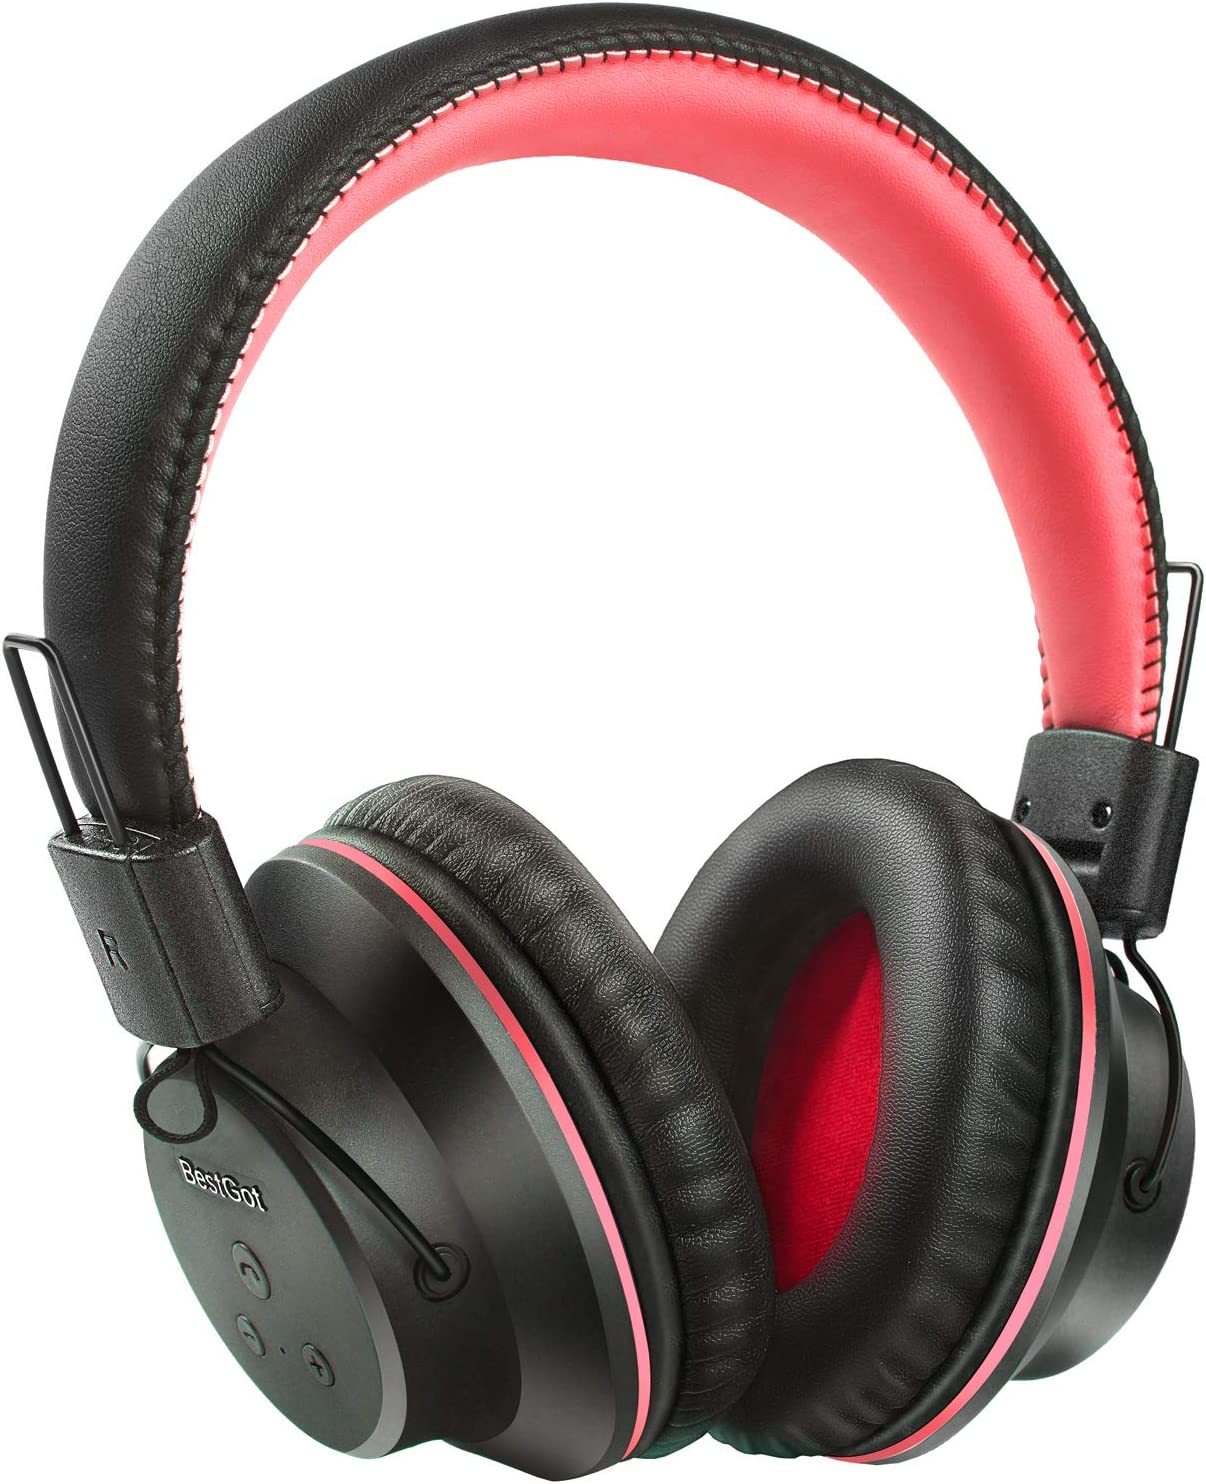 Bluetooth Over Ear Headphones, BestGot S1 Wireless Headset Foldable 20Hrs Playtime Over-Ear Wireless Headphones with Mic for PC Cell Phone Black Red